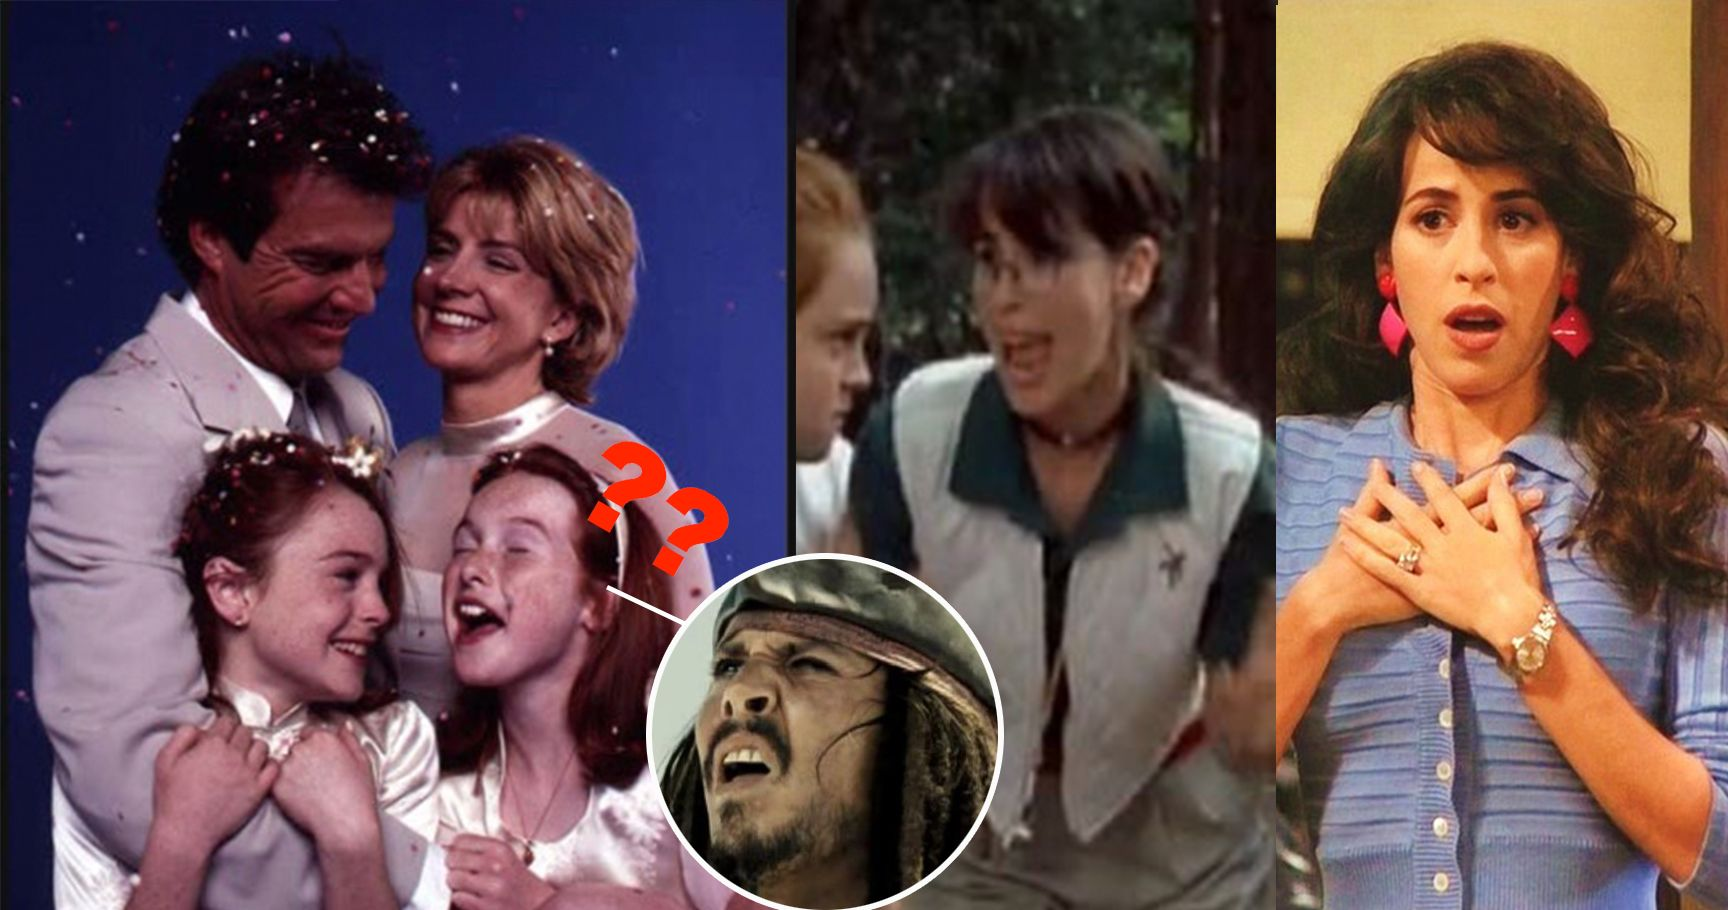 15 Facts About 'The Parent Trap' That Will Blow Any '90s Kid's Mind